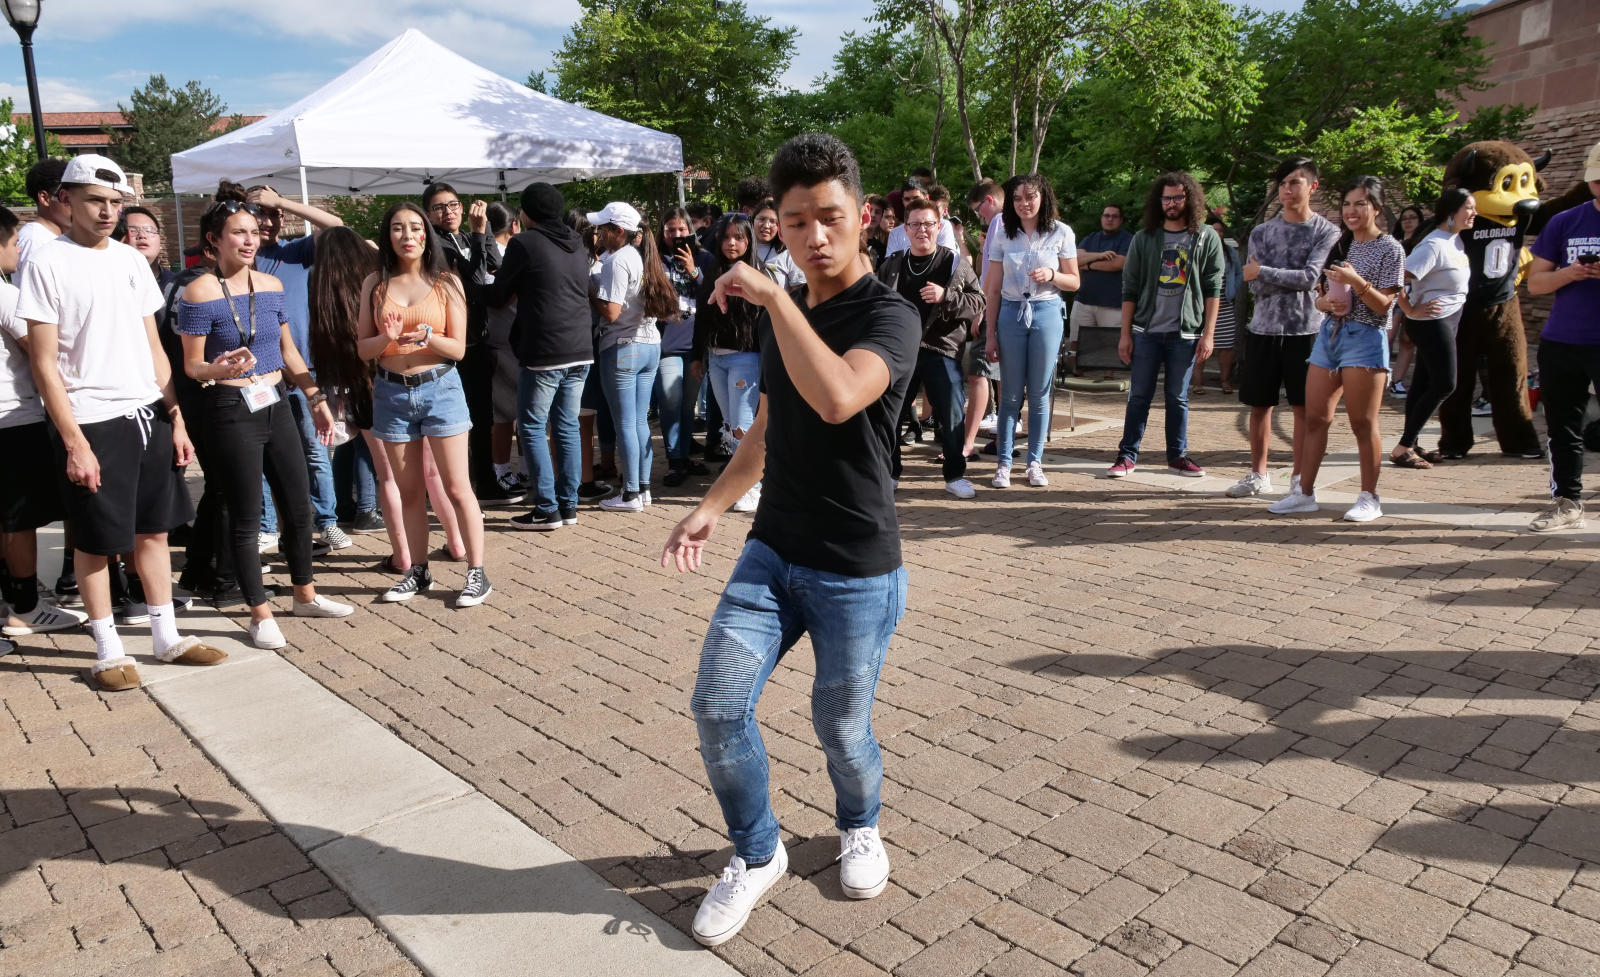 A student dances while others look on at the Ice Cream Social